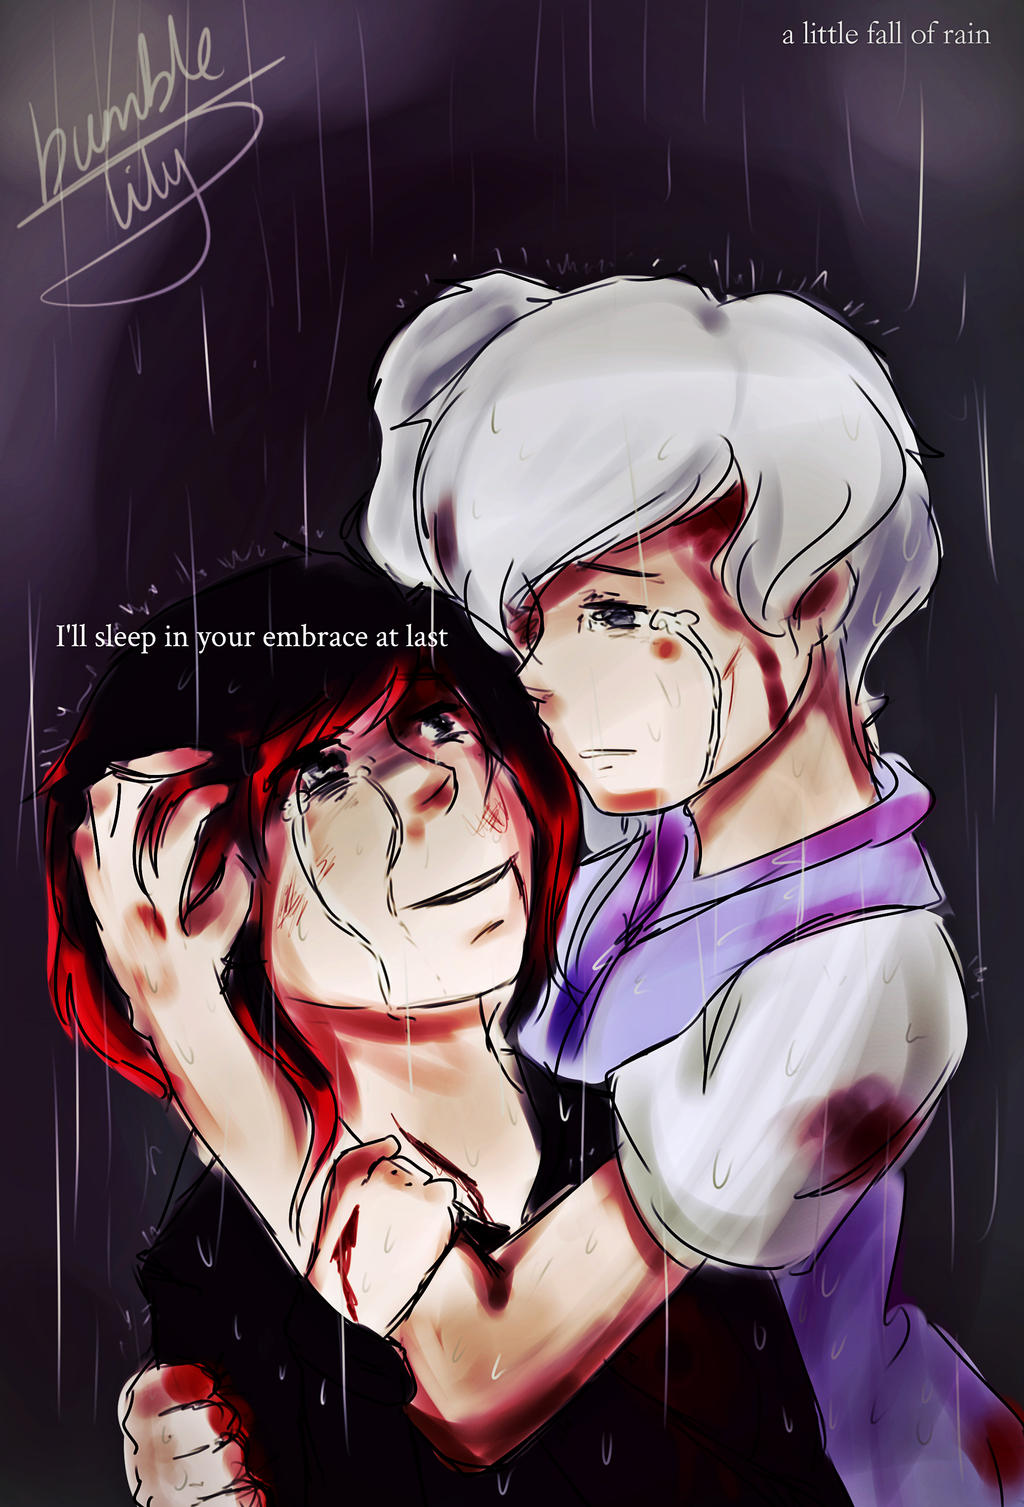 ... ::RWBY:: A Little Fall Of Rain by bumble-lily